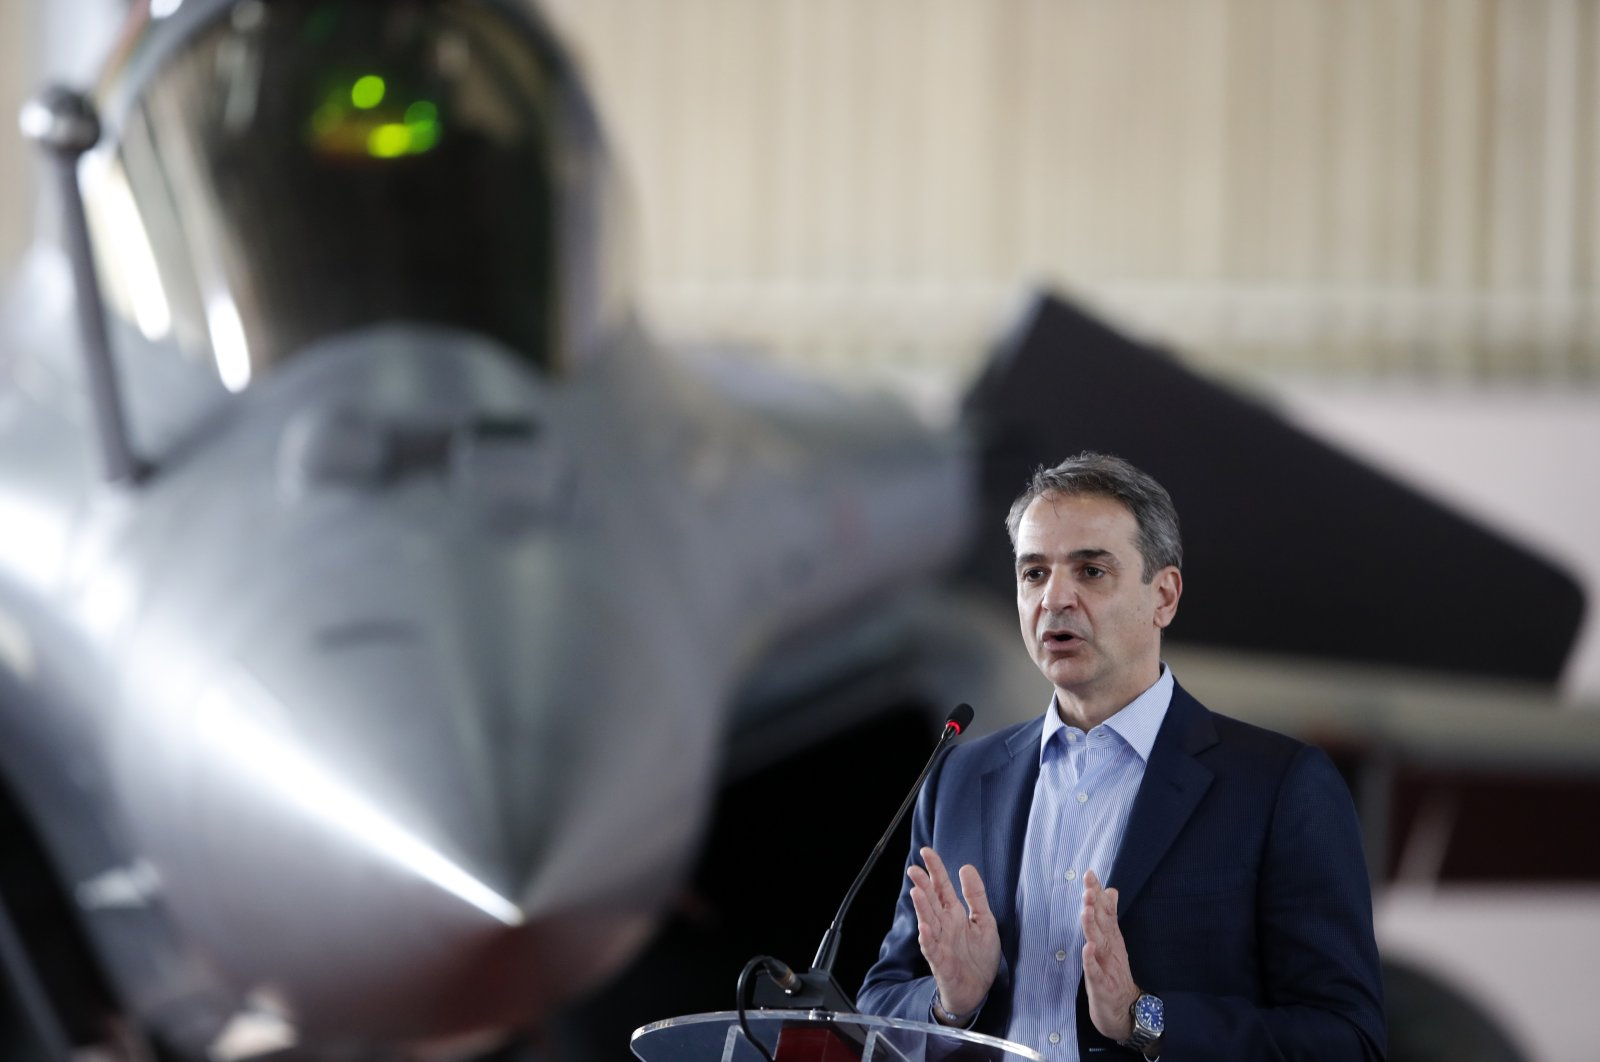 Greece's Prime Minister Kyriakos Mitsotakis speaks during the international military exercise Iniochos with a French Rafale fighter jet in the background, at Andravida air base, about 279 kilometers (174 miles) southwest of Athens, Greece, April 20, 2021. (AP Photo)